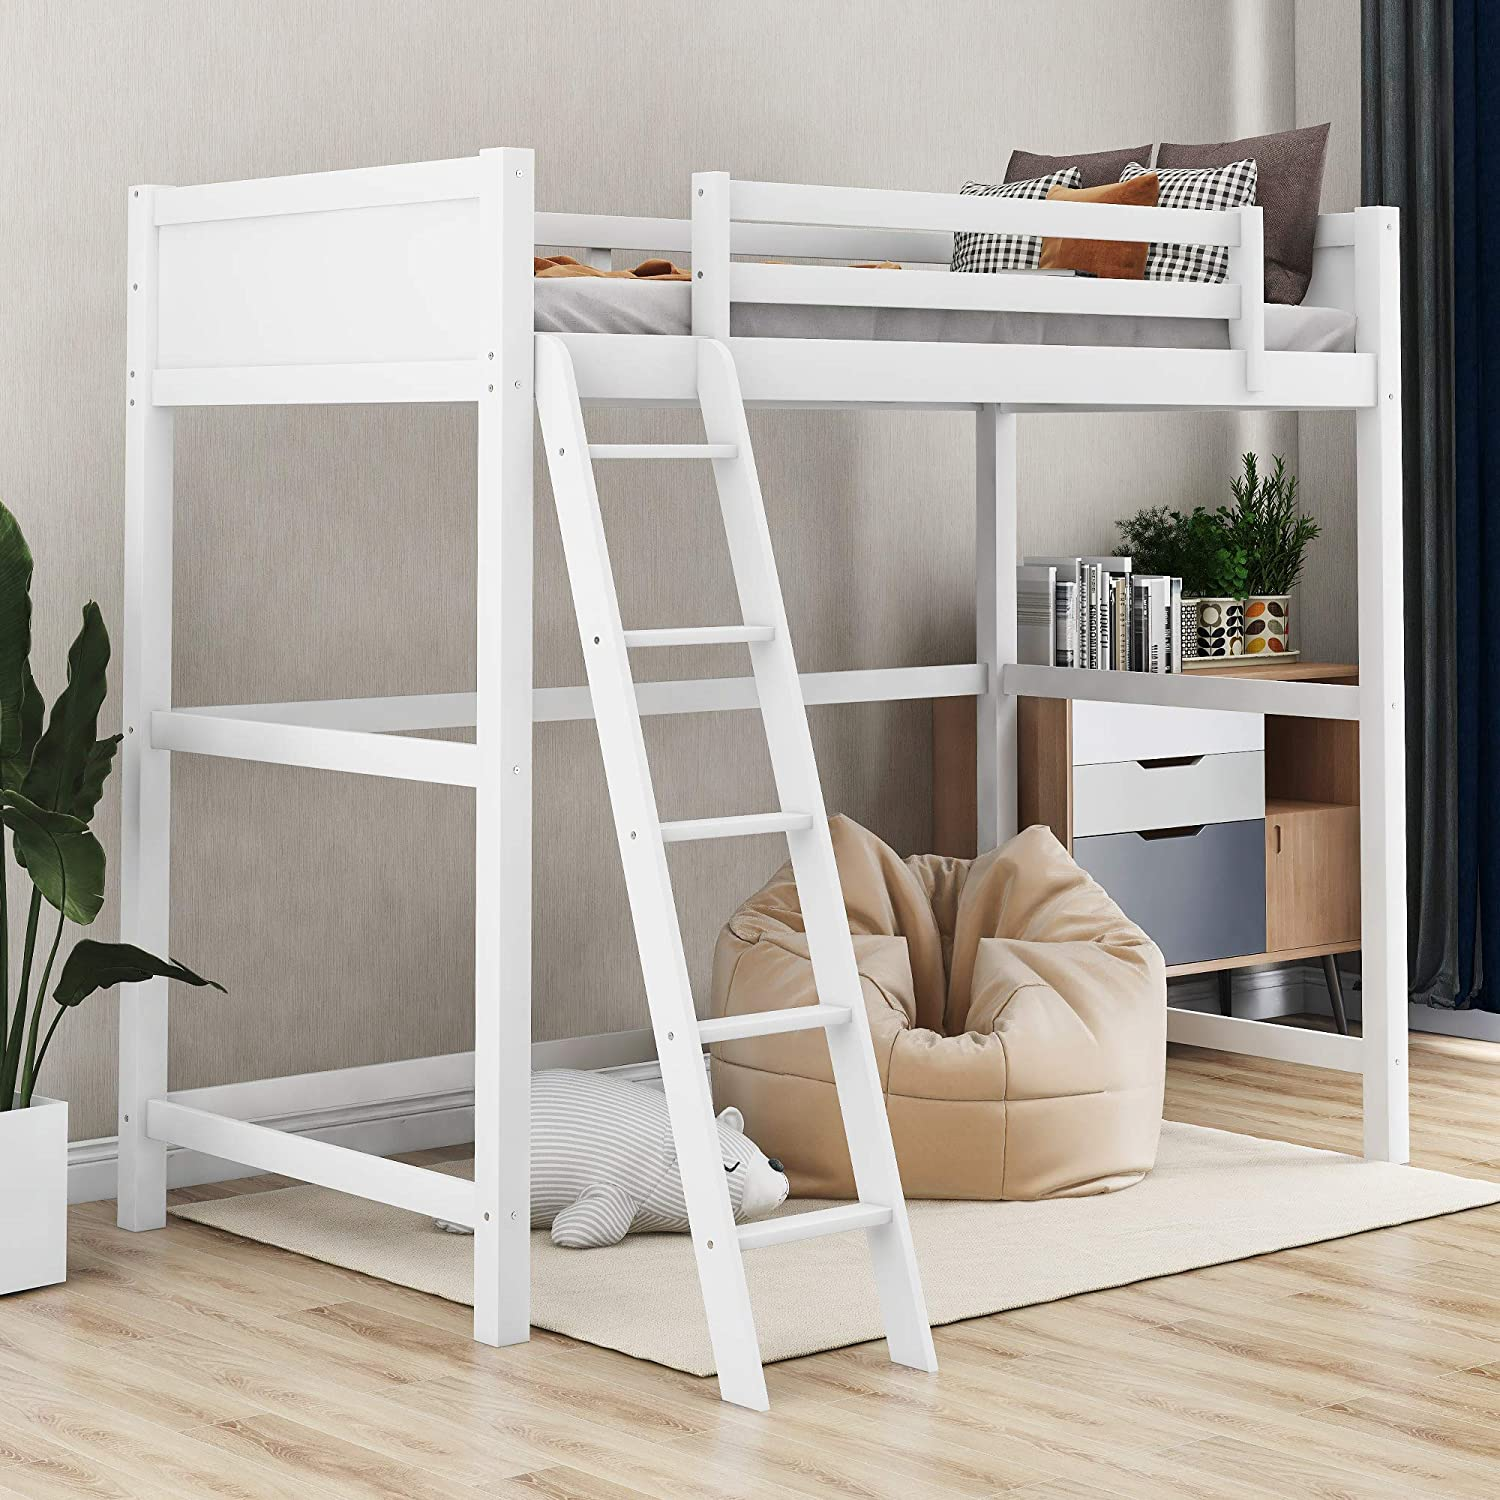 Amazon.com: Harper&Bright Designs Solid Wood Loft Bed,Side Angled Ladder (White): Kitchen & Dining